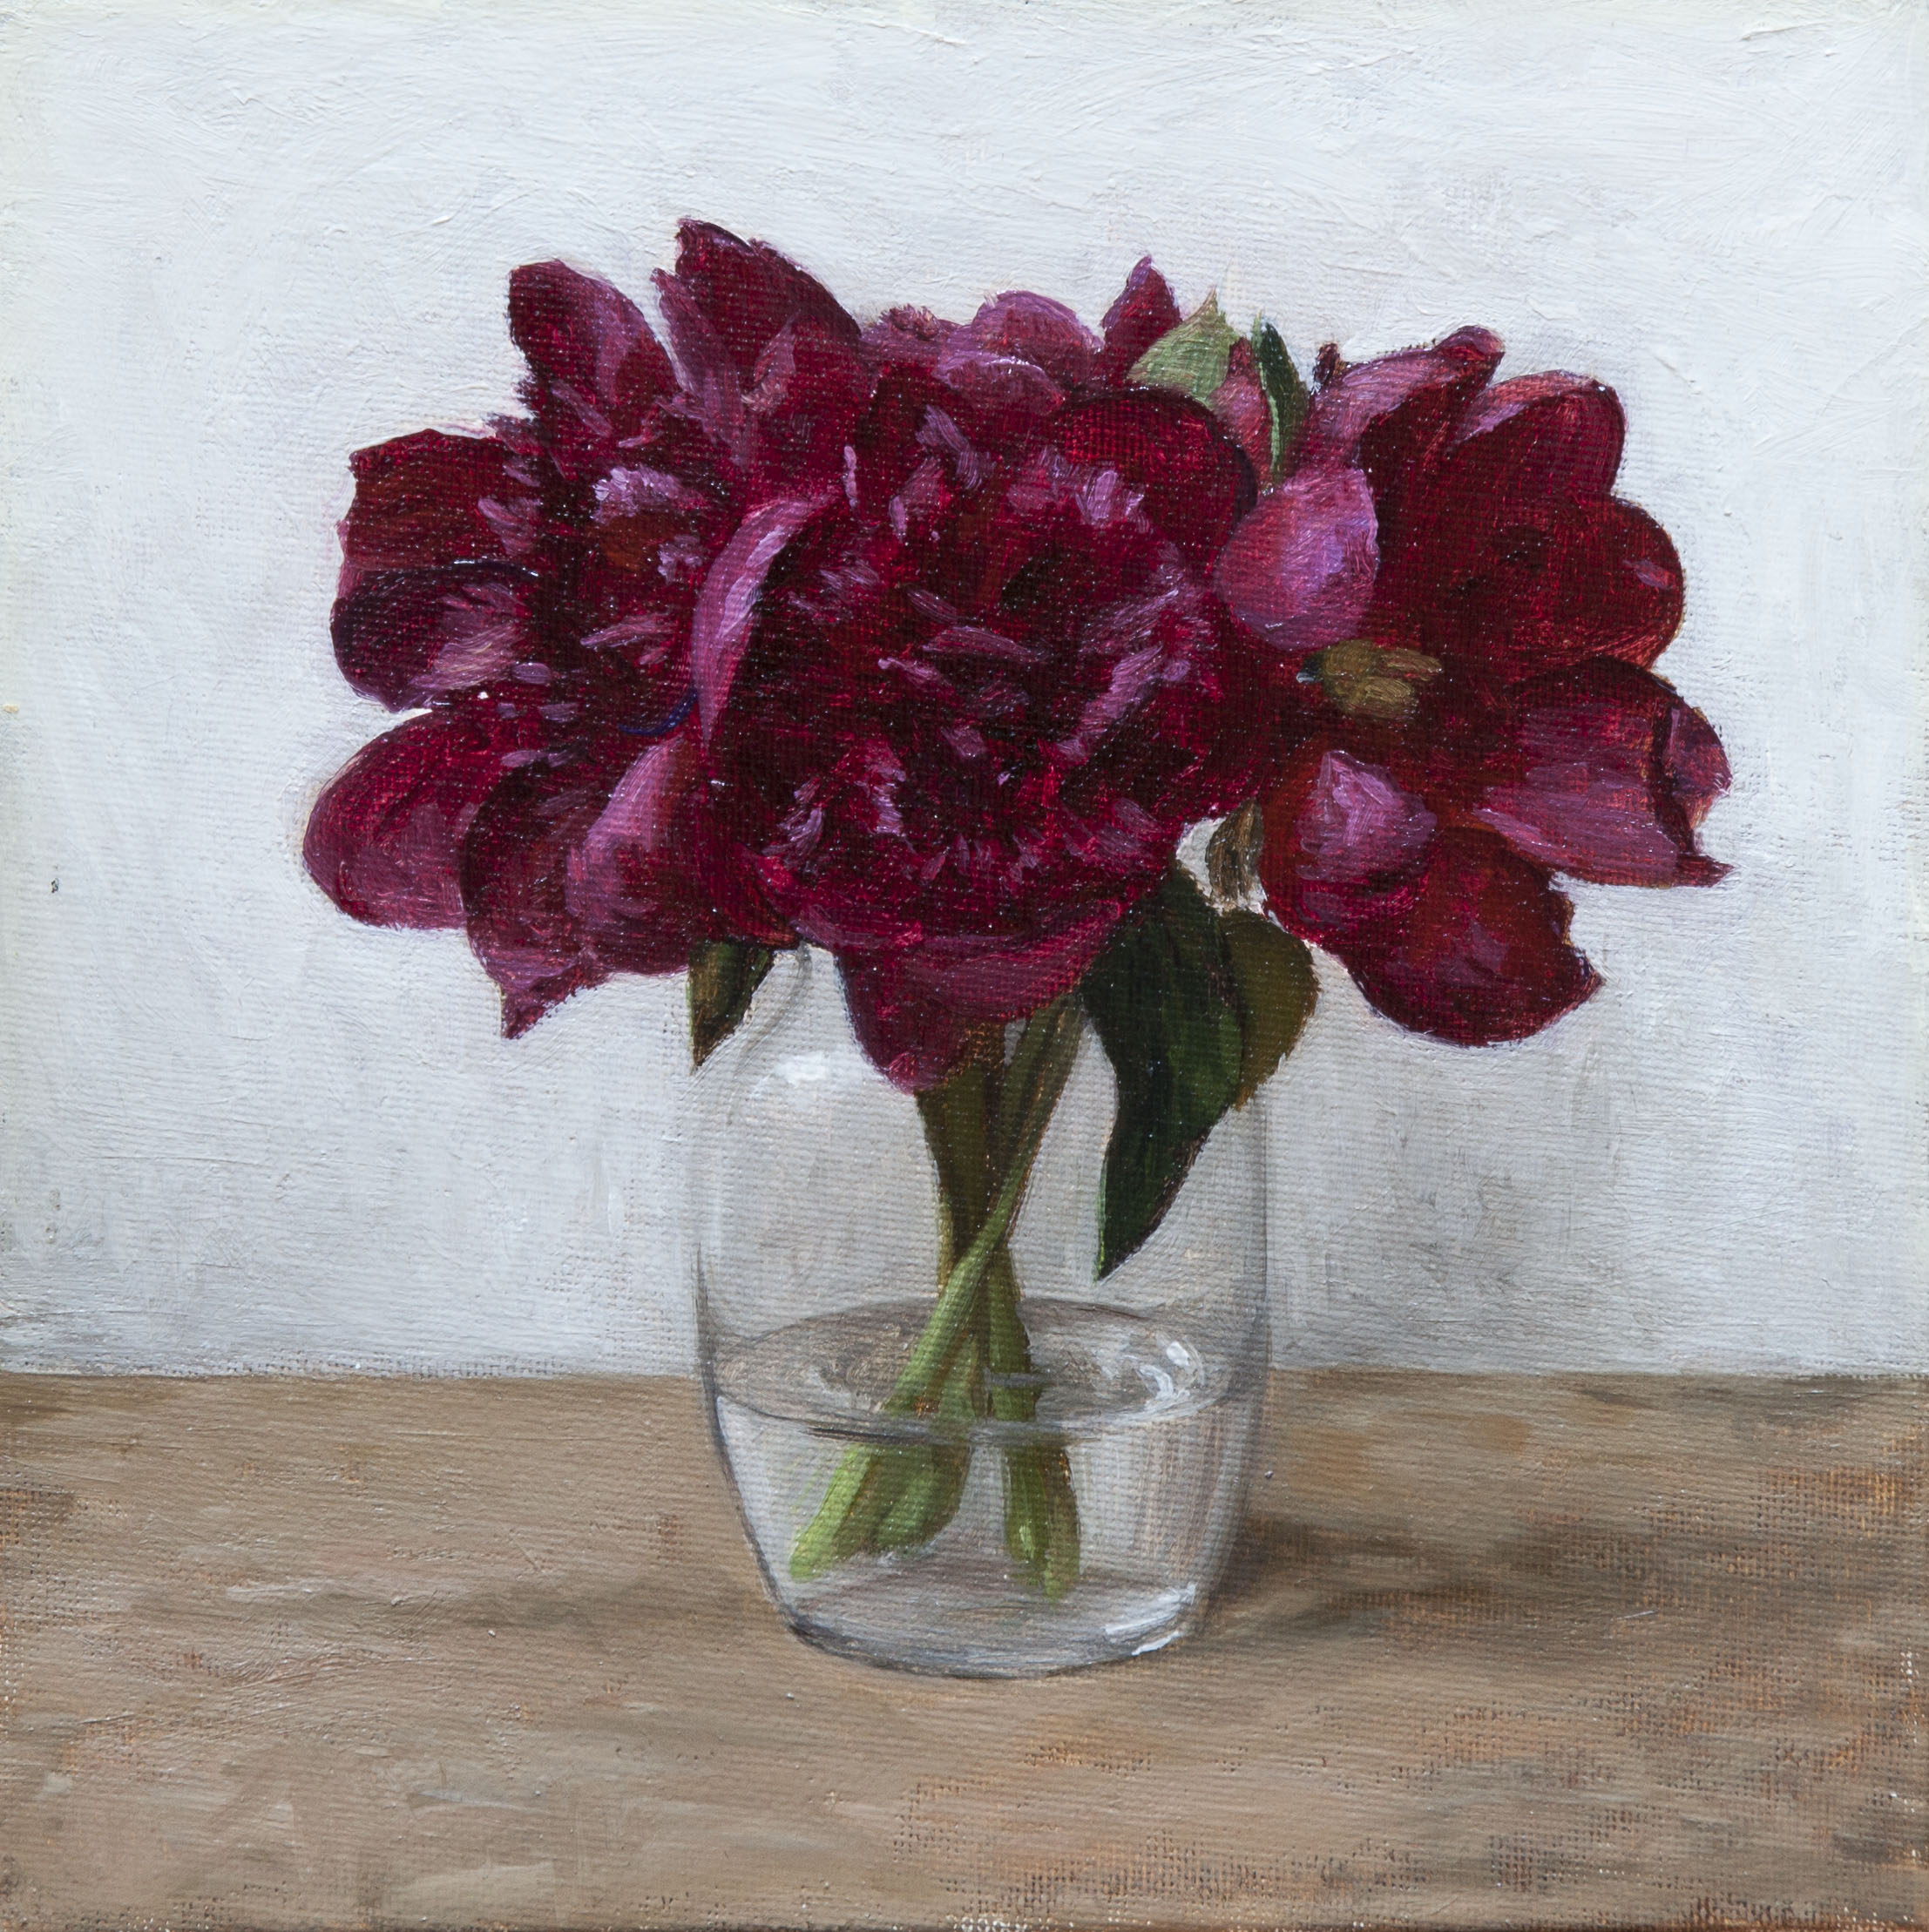 Pink Peonies in a Vase. 8x8. Oil on Panel.